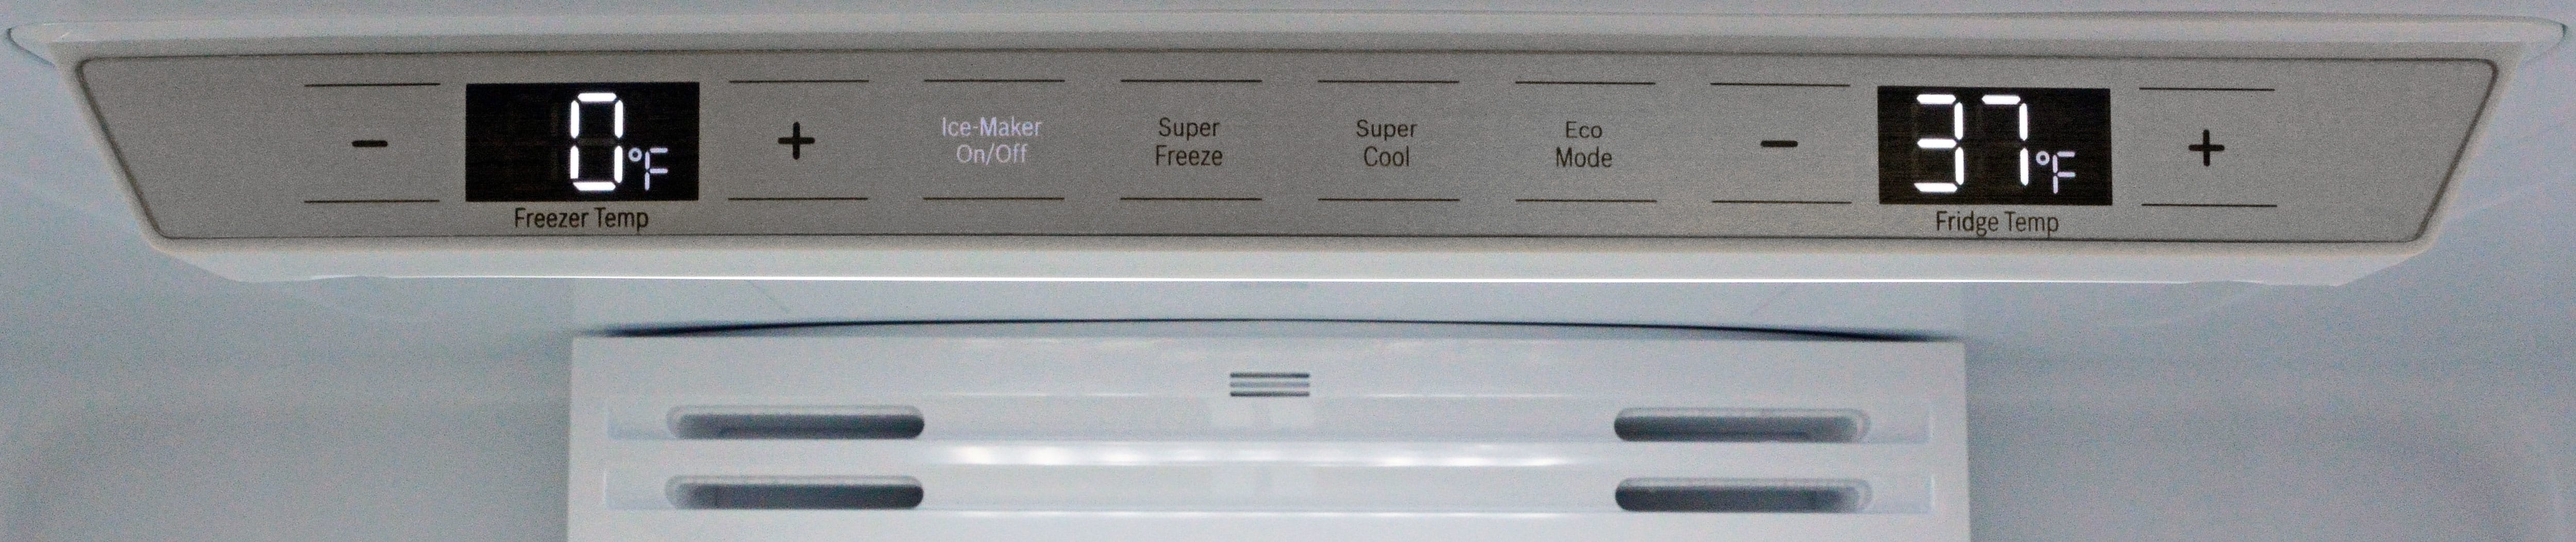 Bosch 800 series b21cl81sns b21cl80sns counter depth refrigerator with so few features the control panel is very straightforward the 81sns puts the rubansaba